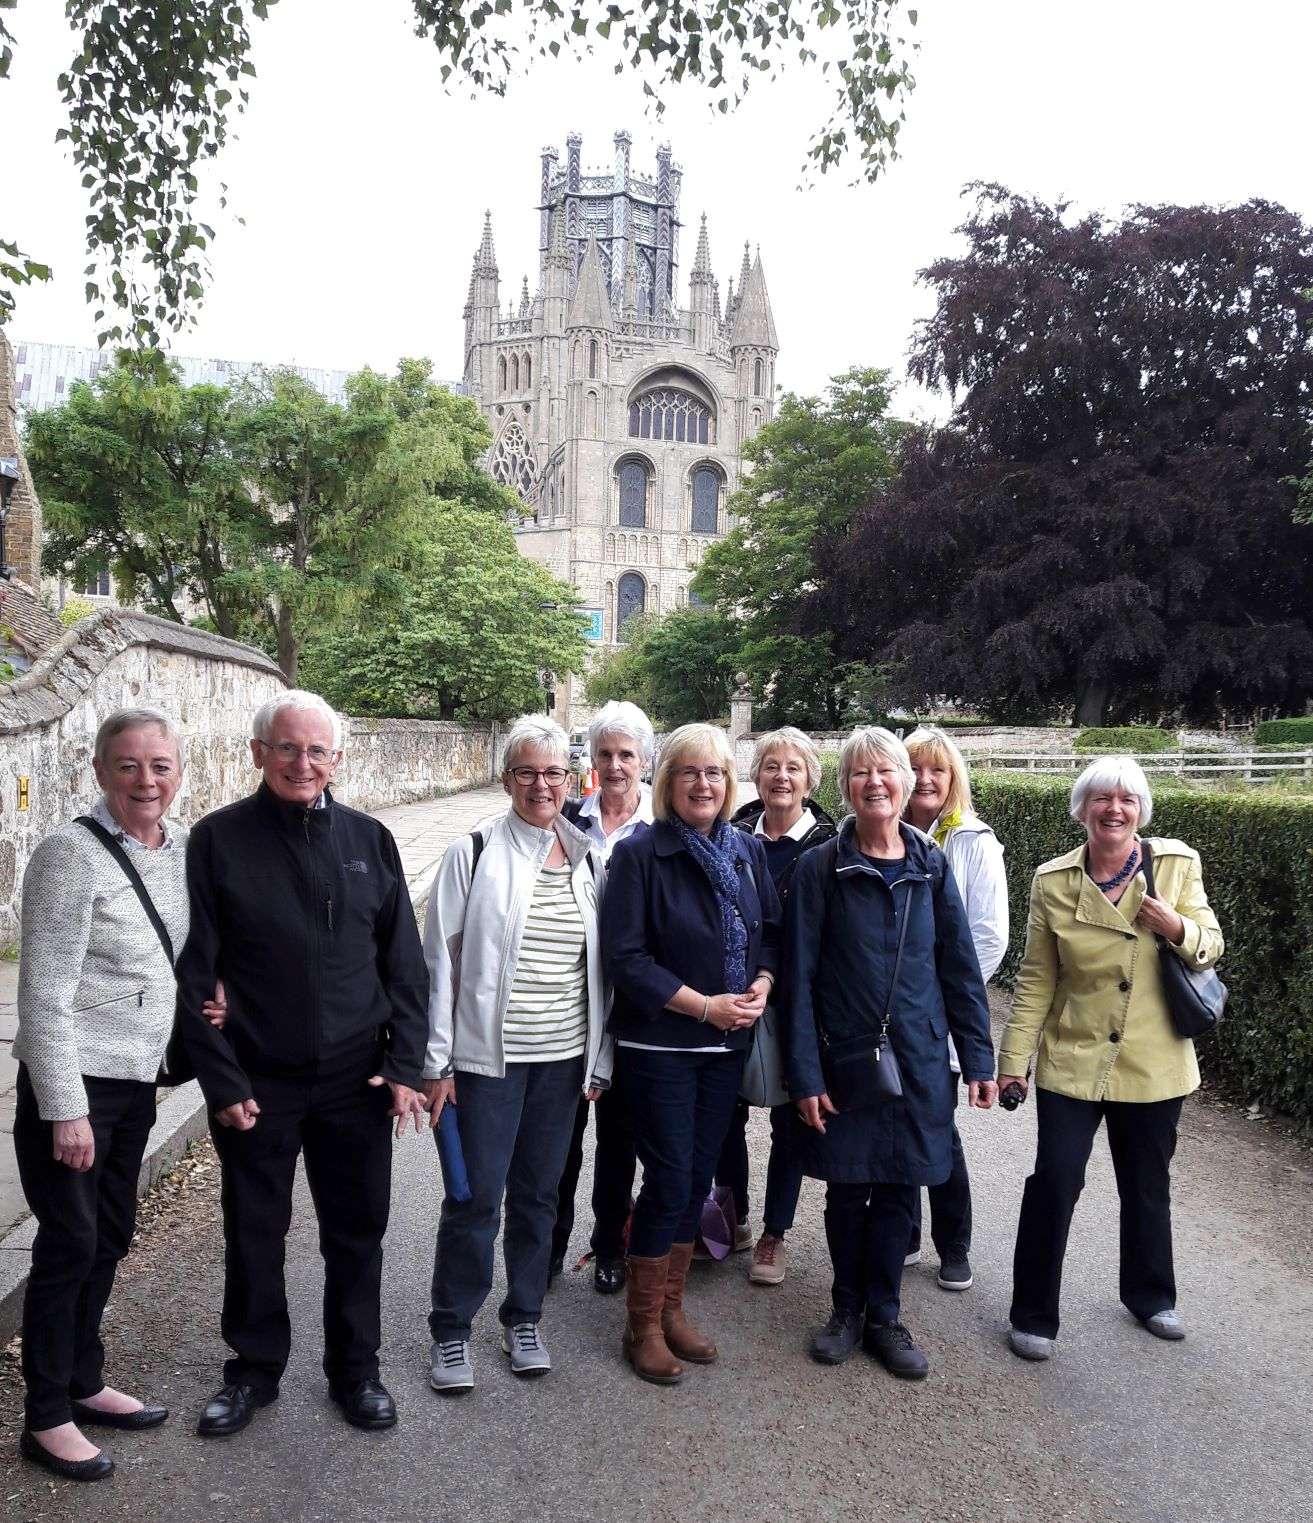 The group outside Ely Cathedral